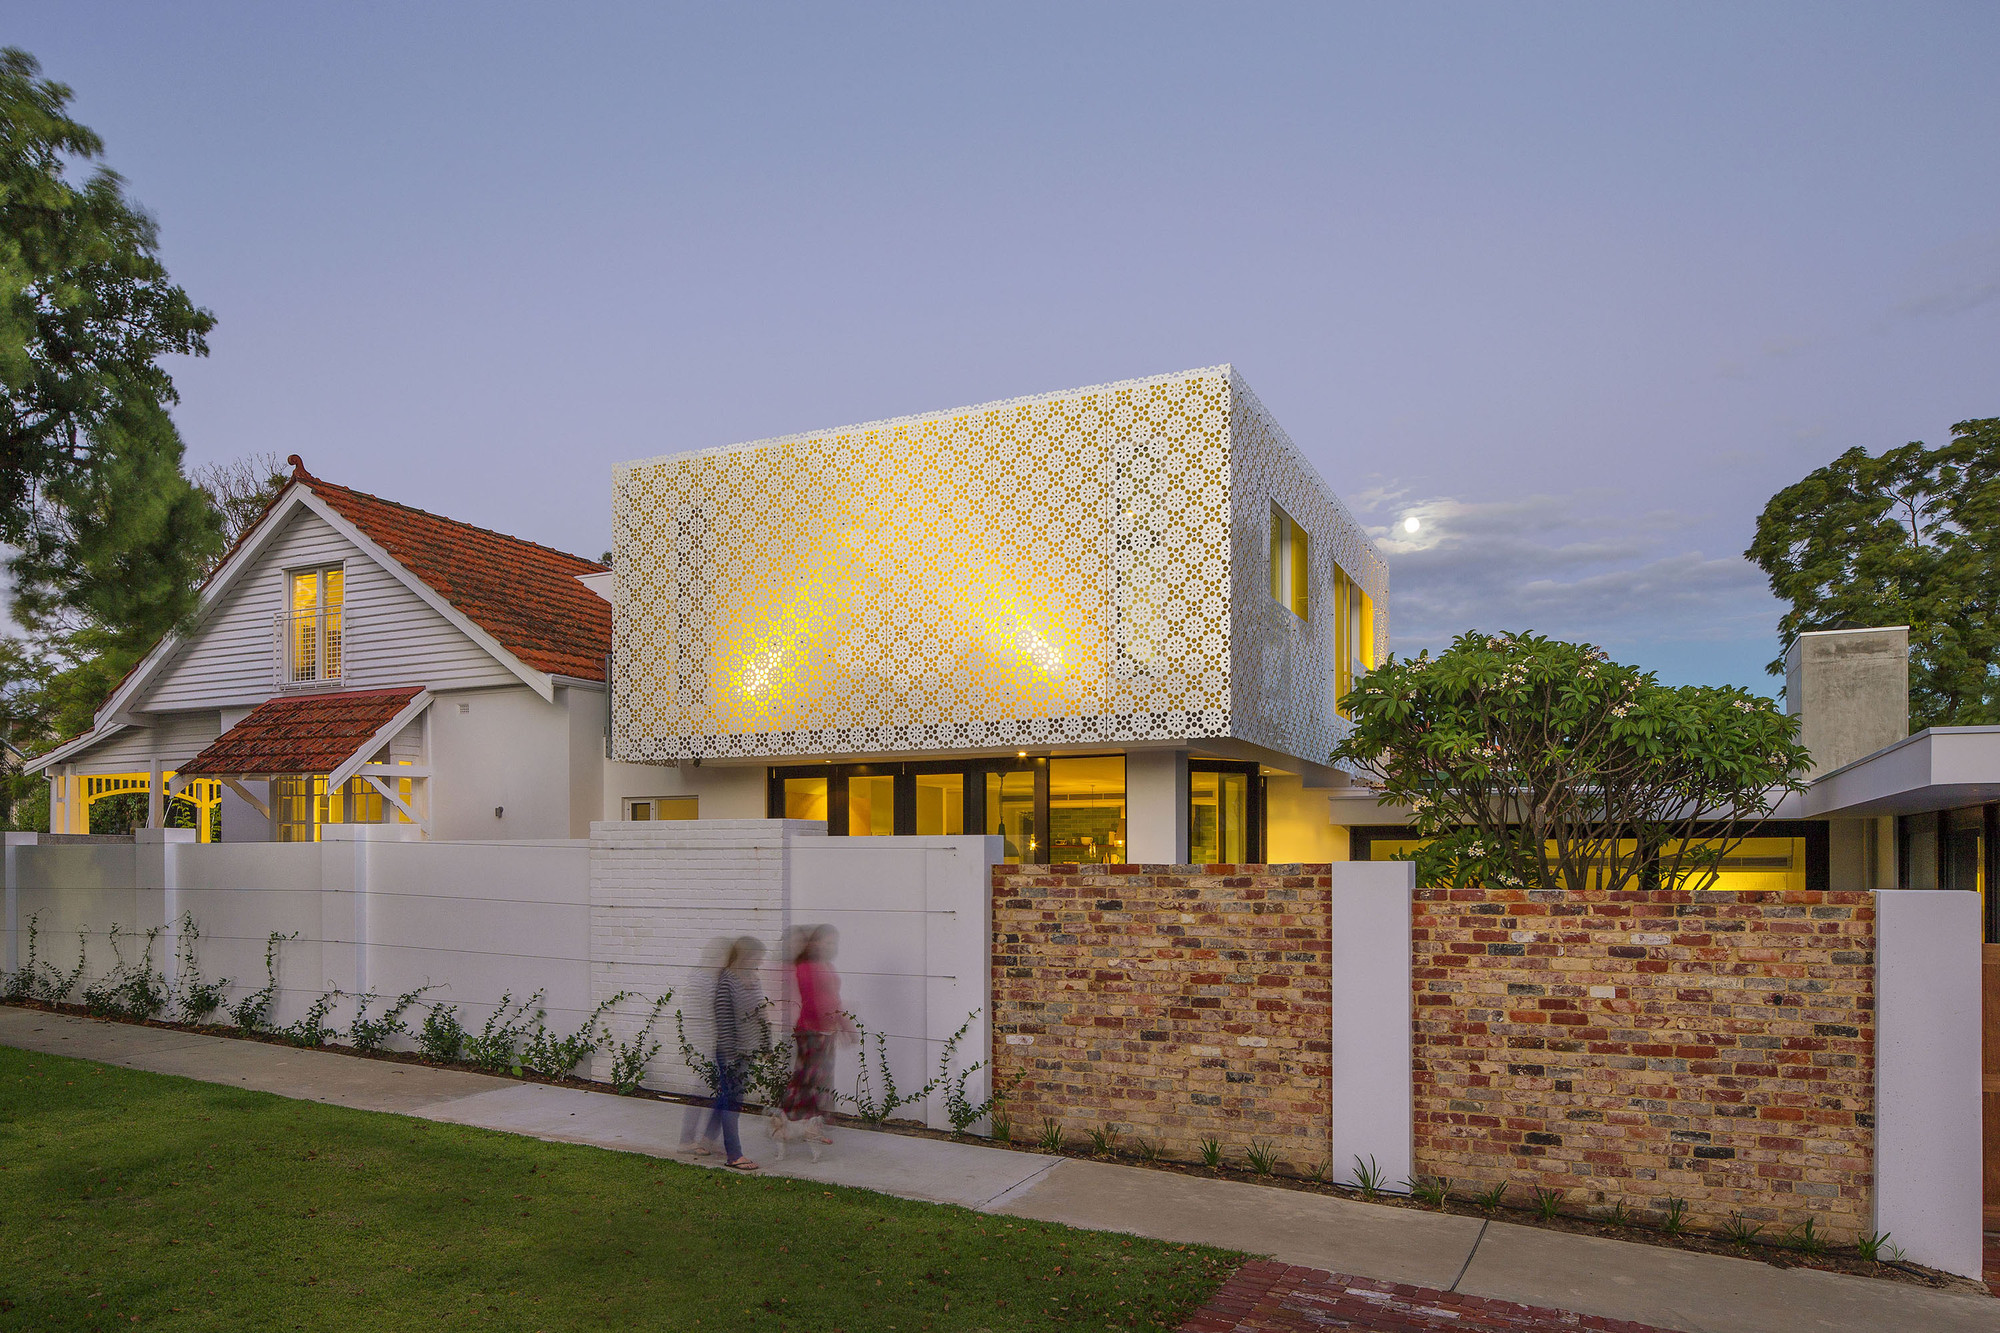 Hamersley Road Residence  / Studio53, © Christian Sprogoe